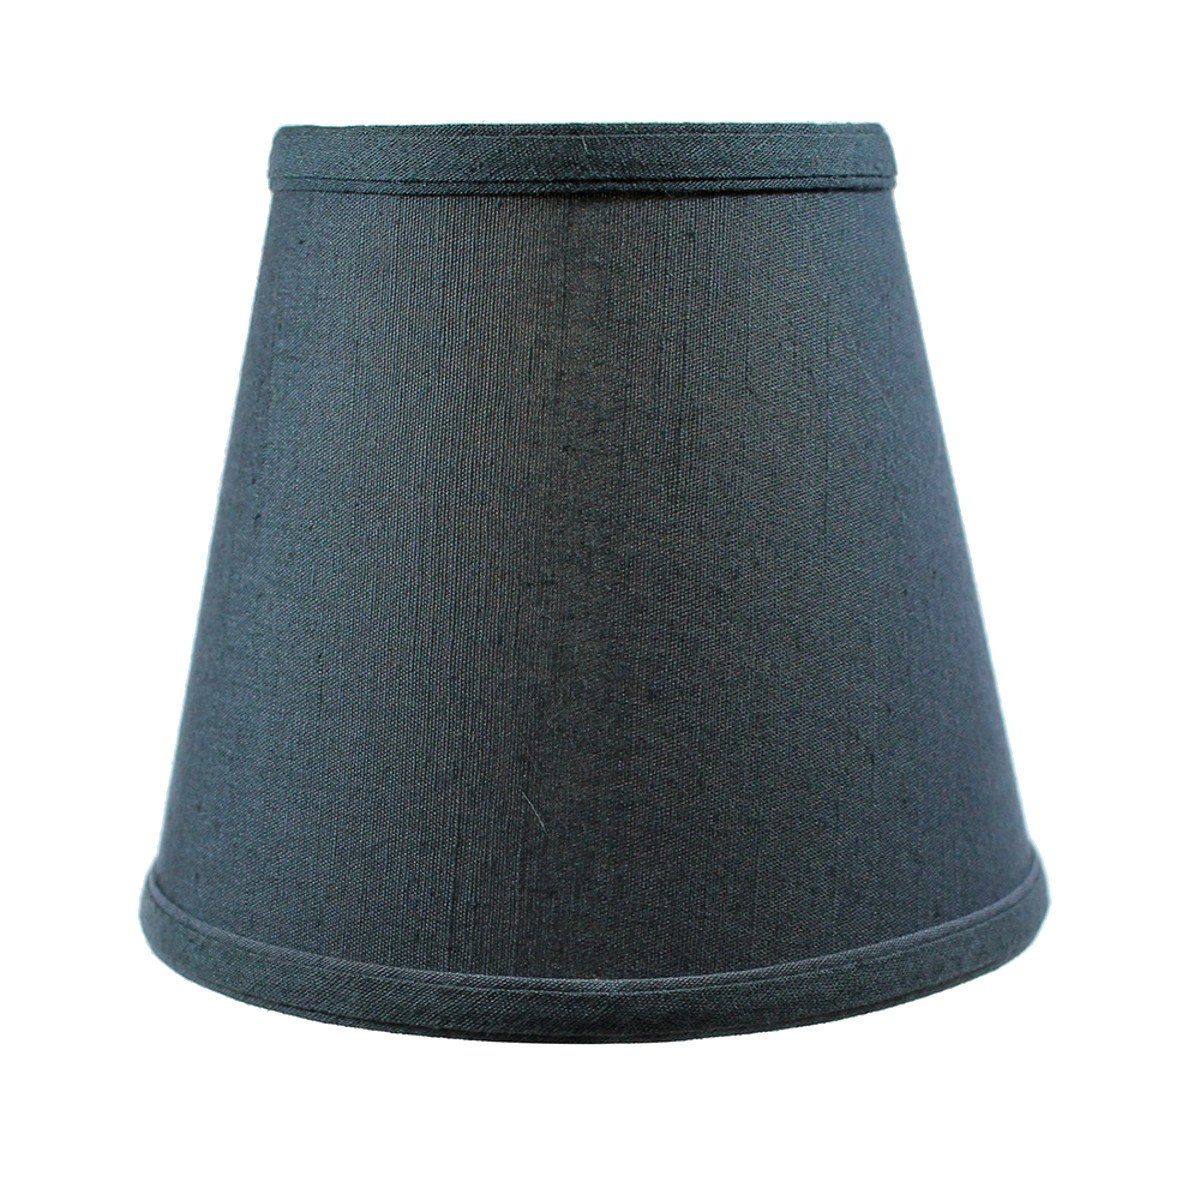 5x8x7 Textured Slate Blue Hard Back Lampshade Clip On Fitter by Home Concept - Perfect for Small Table Lamps, Desk Lamps, and Accent Lights -Small, Blue